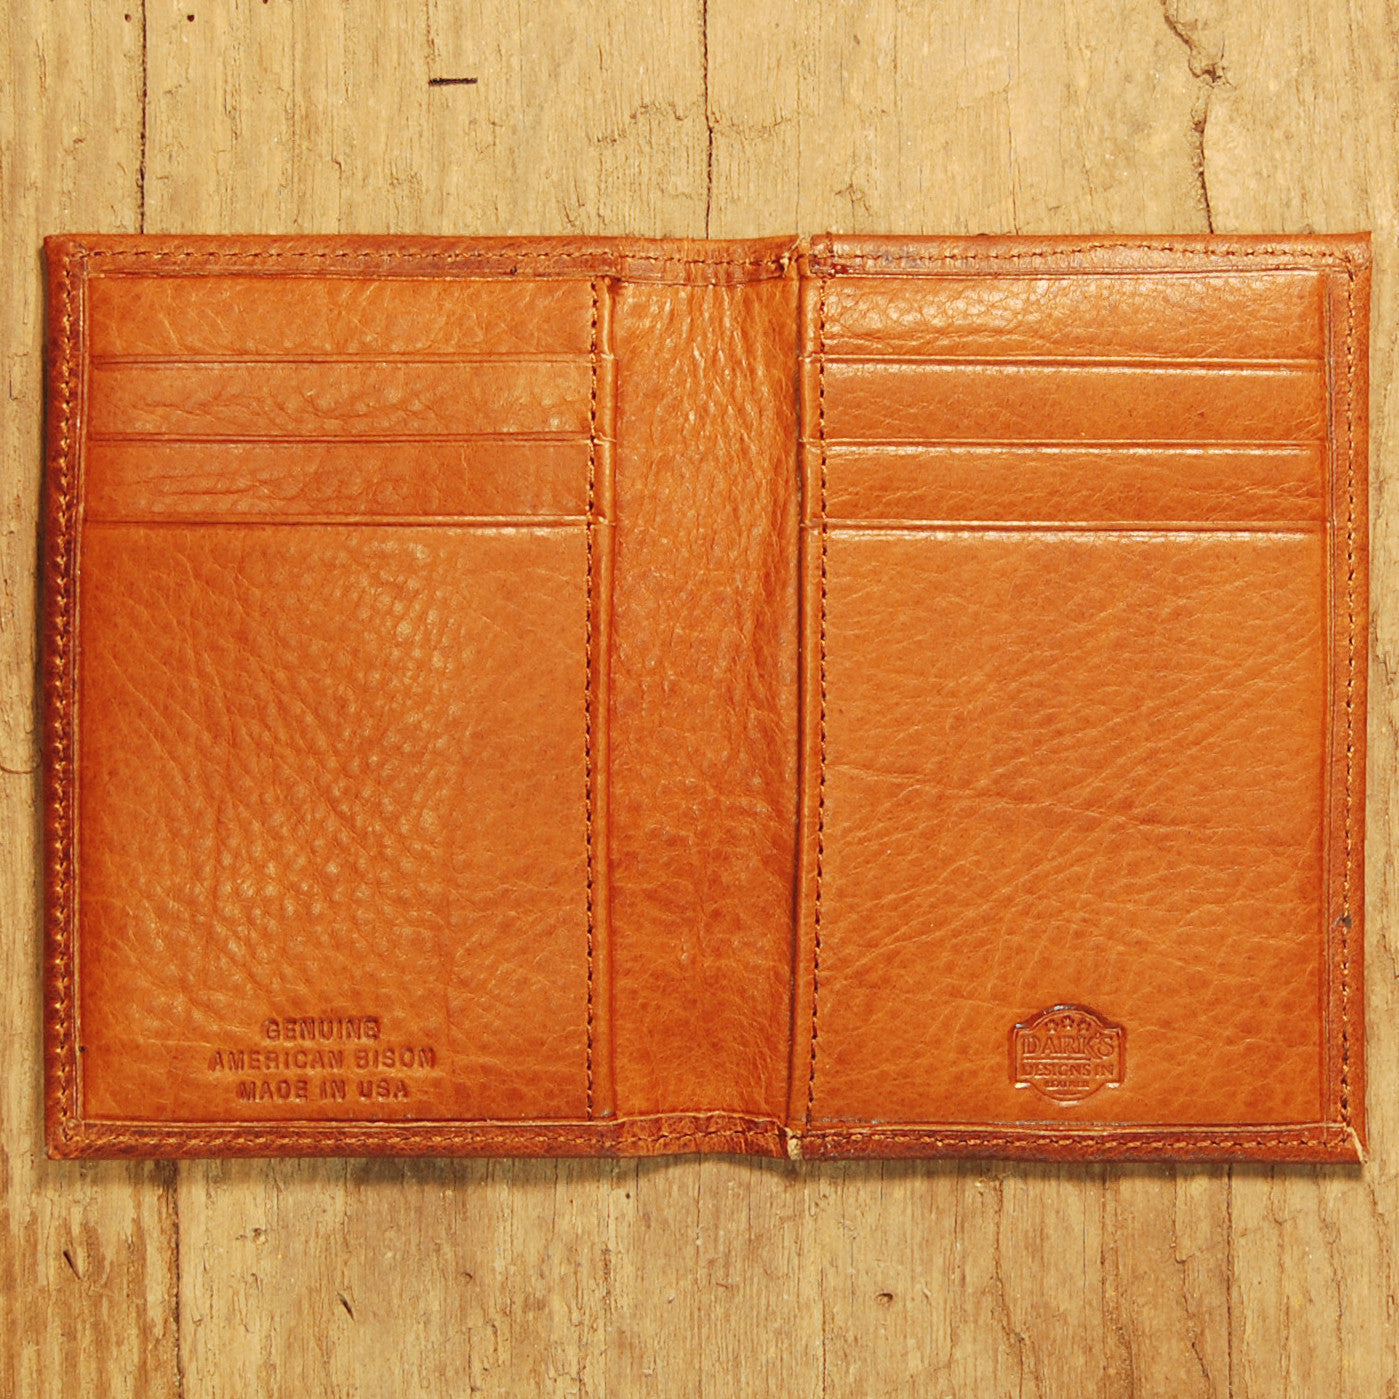 Dark's Leather Executive Card Case in Bison Cognac, Interior